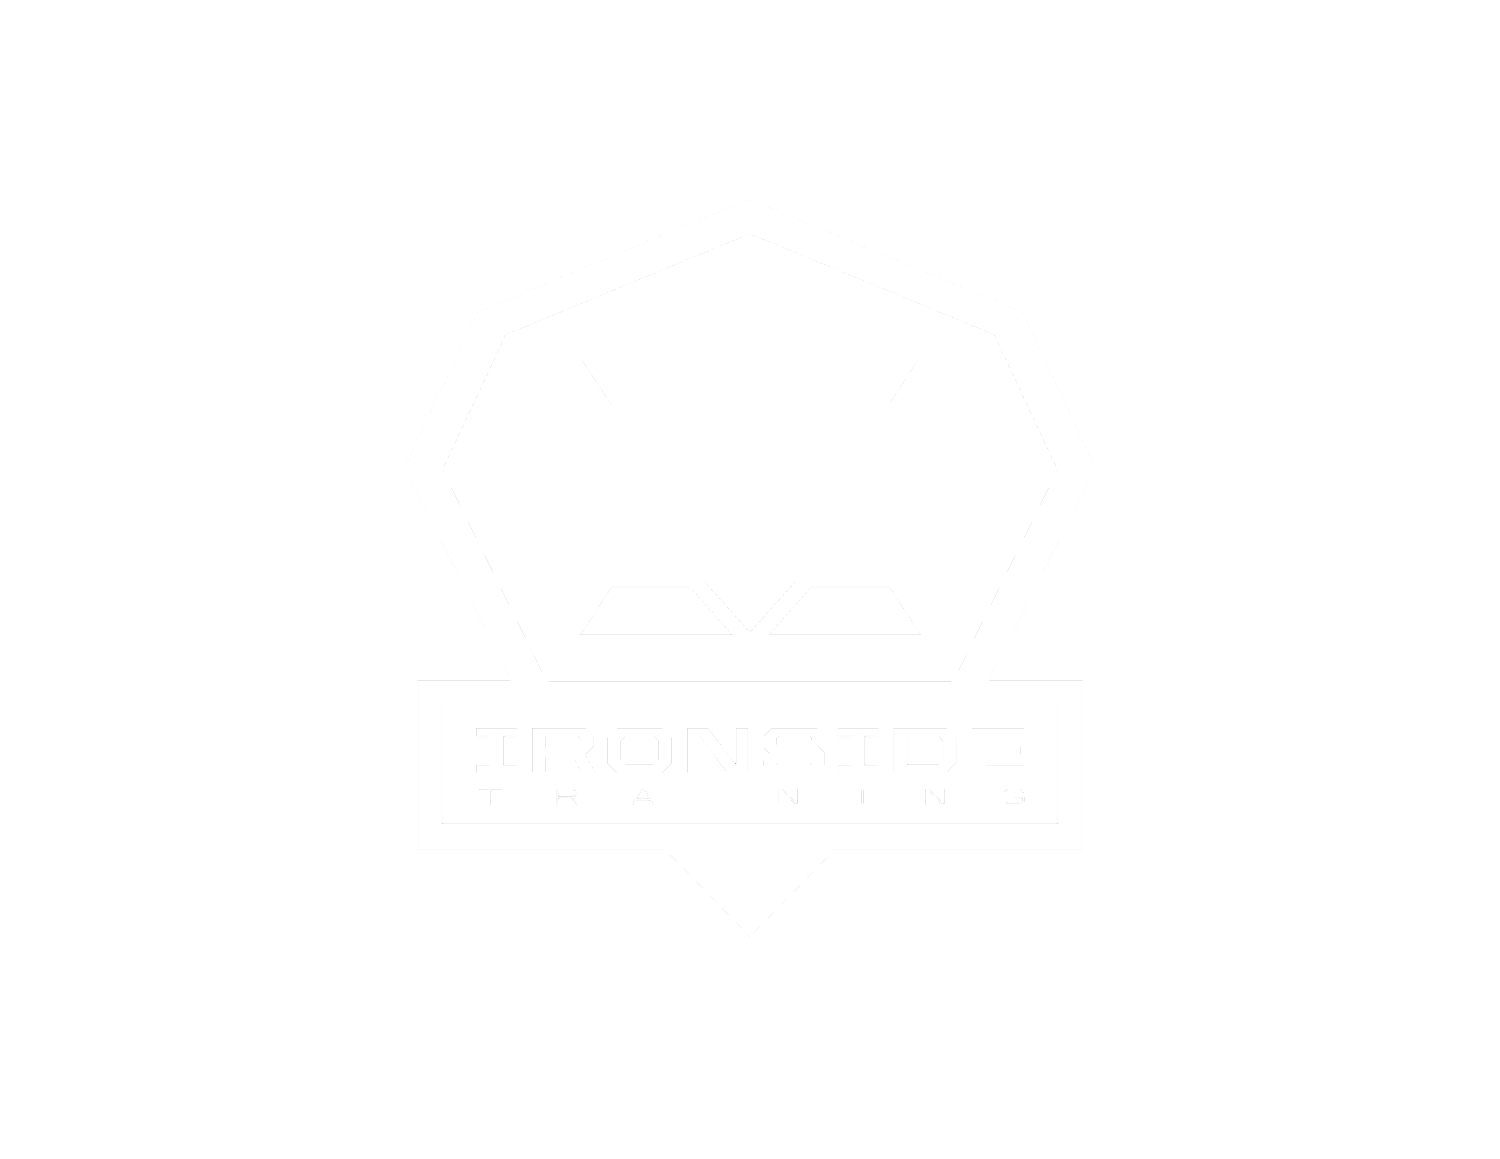 IRONSIDE TRAINING